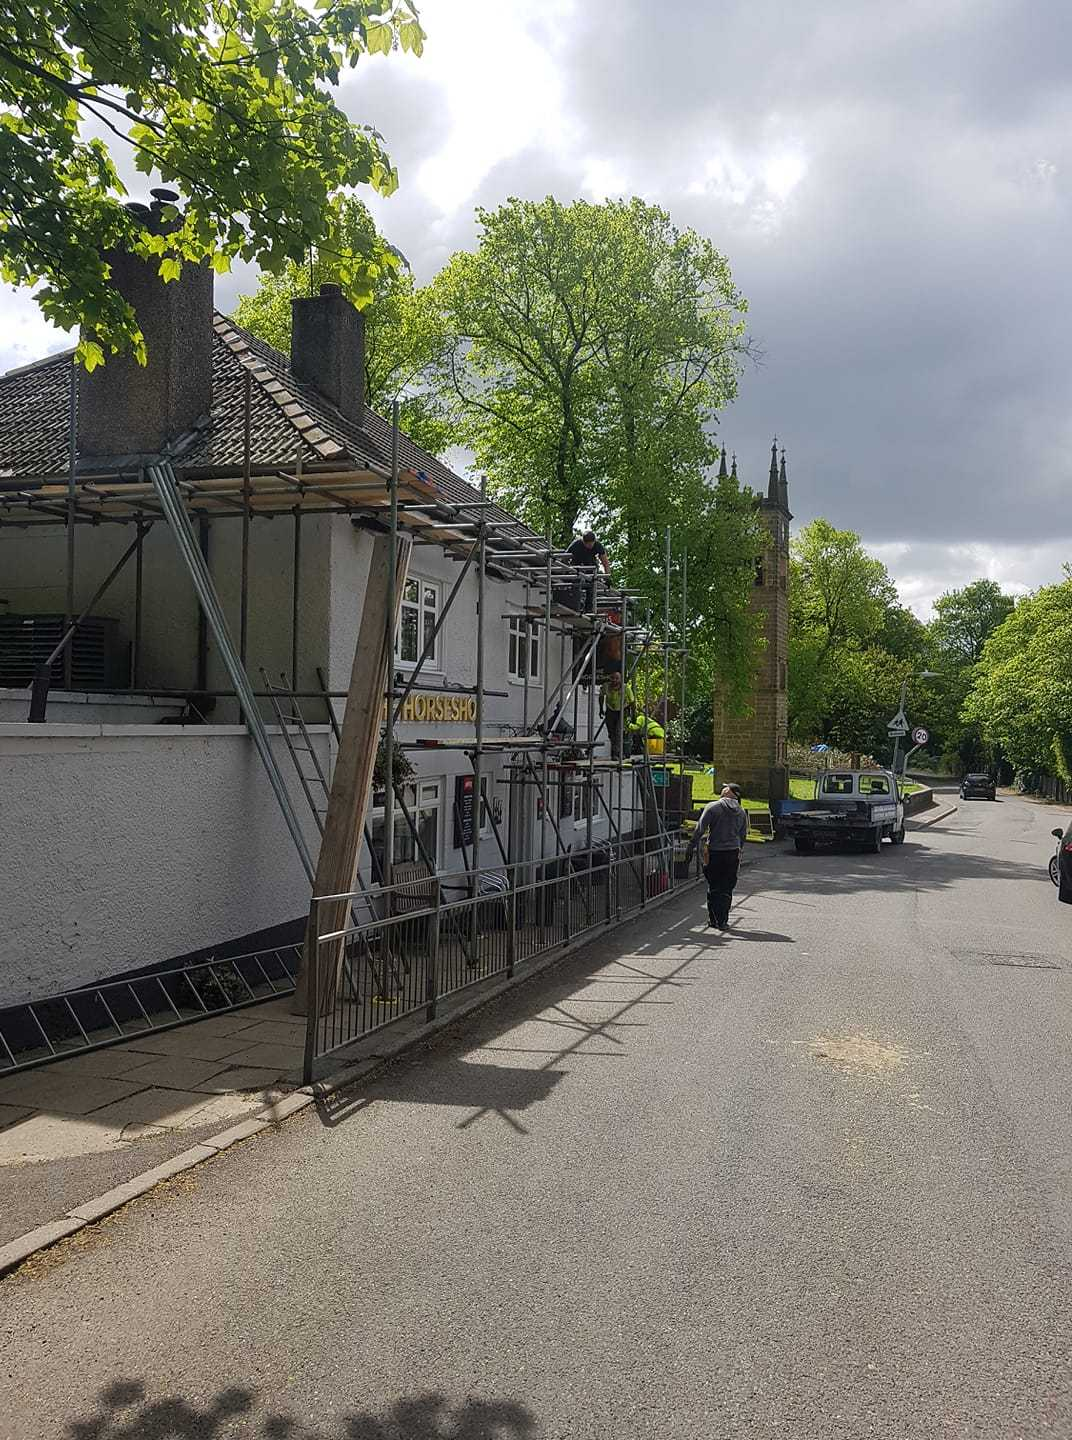 ROOFING: Scaffolding was in place at The Horseshoe Inn, Ringley, while a new roof was installed